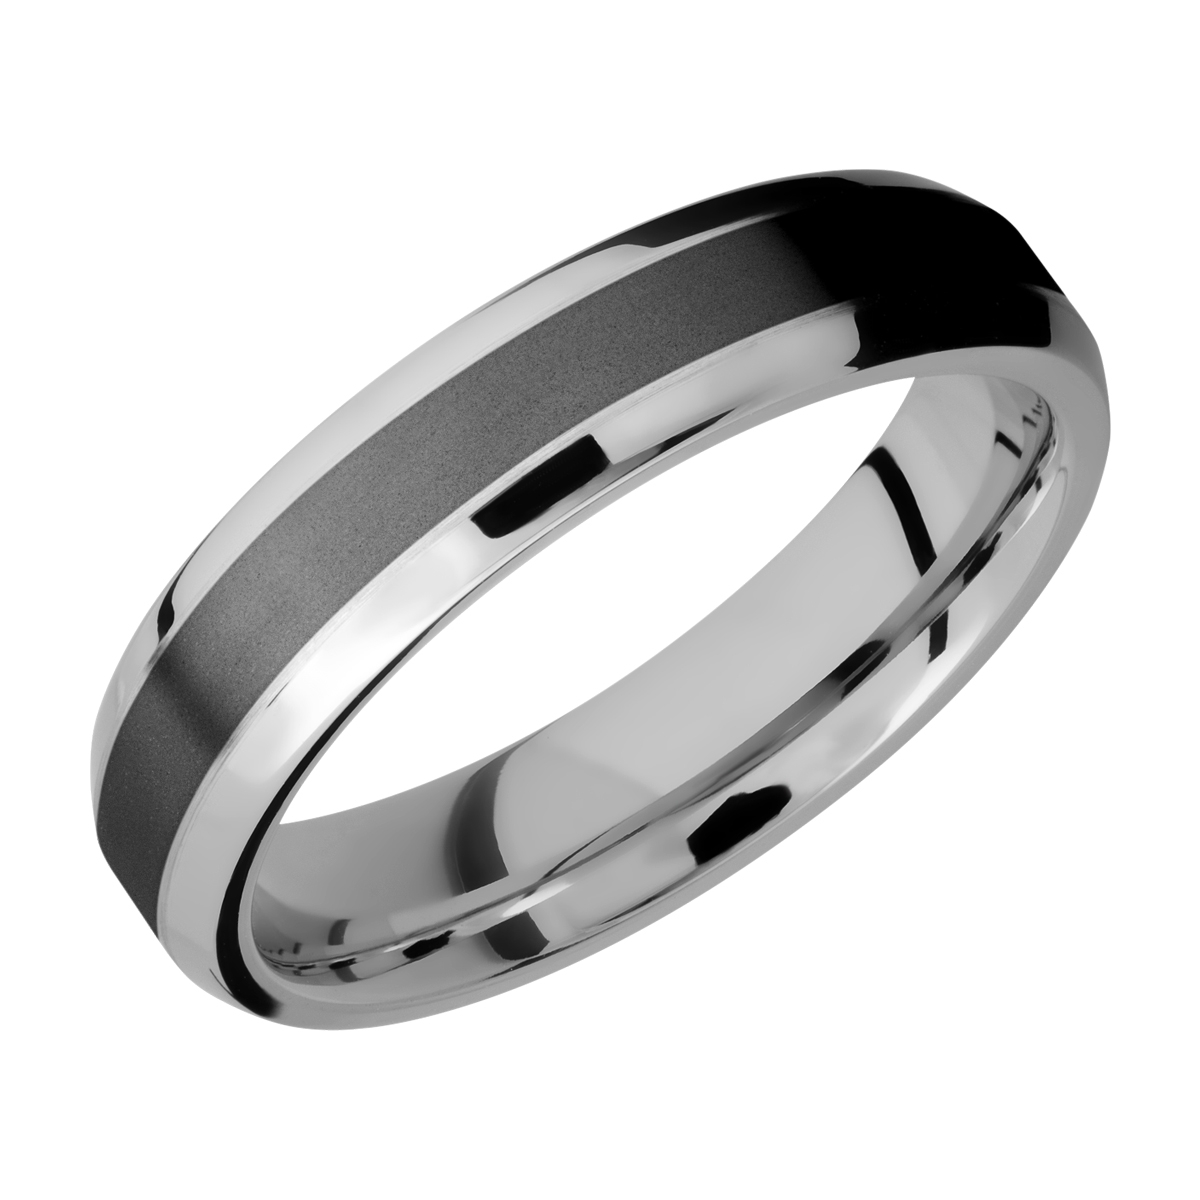 Lashbrook CCPF5B13(NS)/ZIRCONIUM Cobalt Chrome Wedding Ring or Band